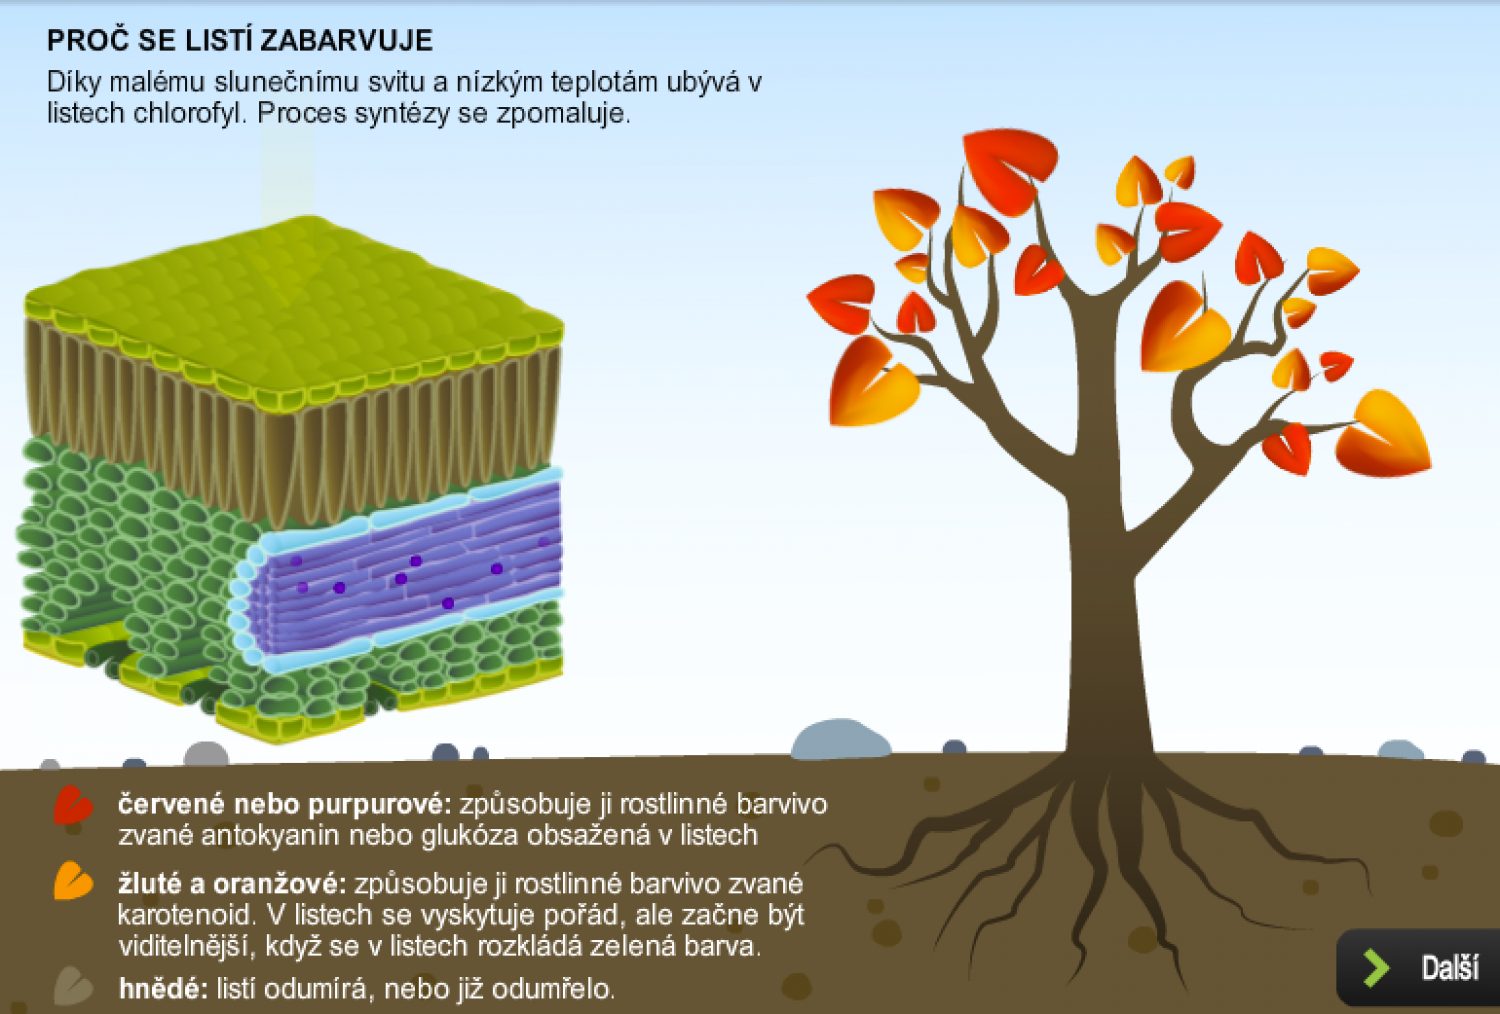 Why do leaves fall off trees? Infographic